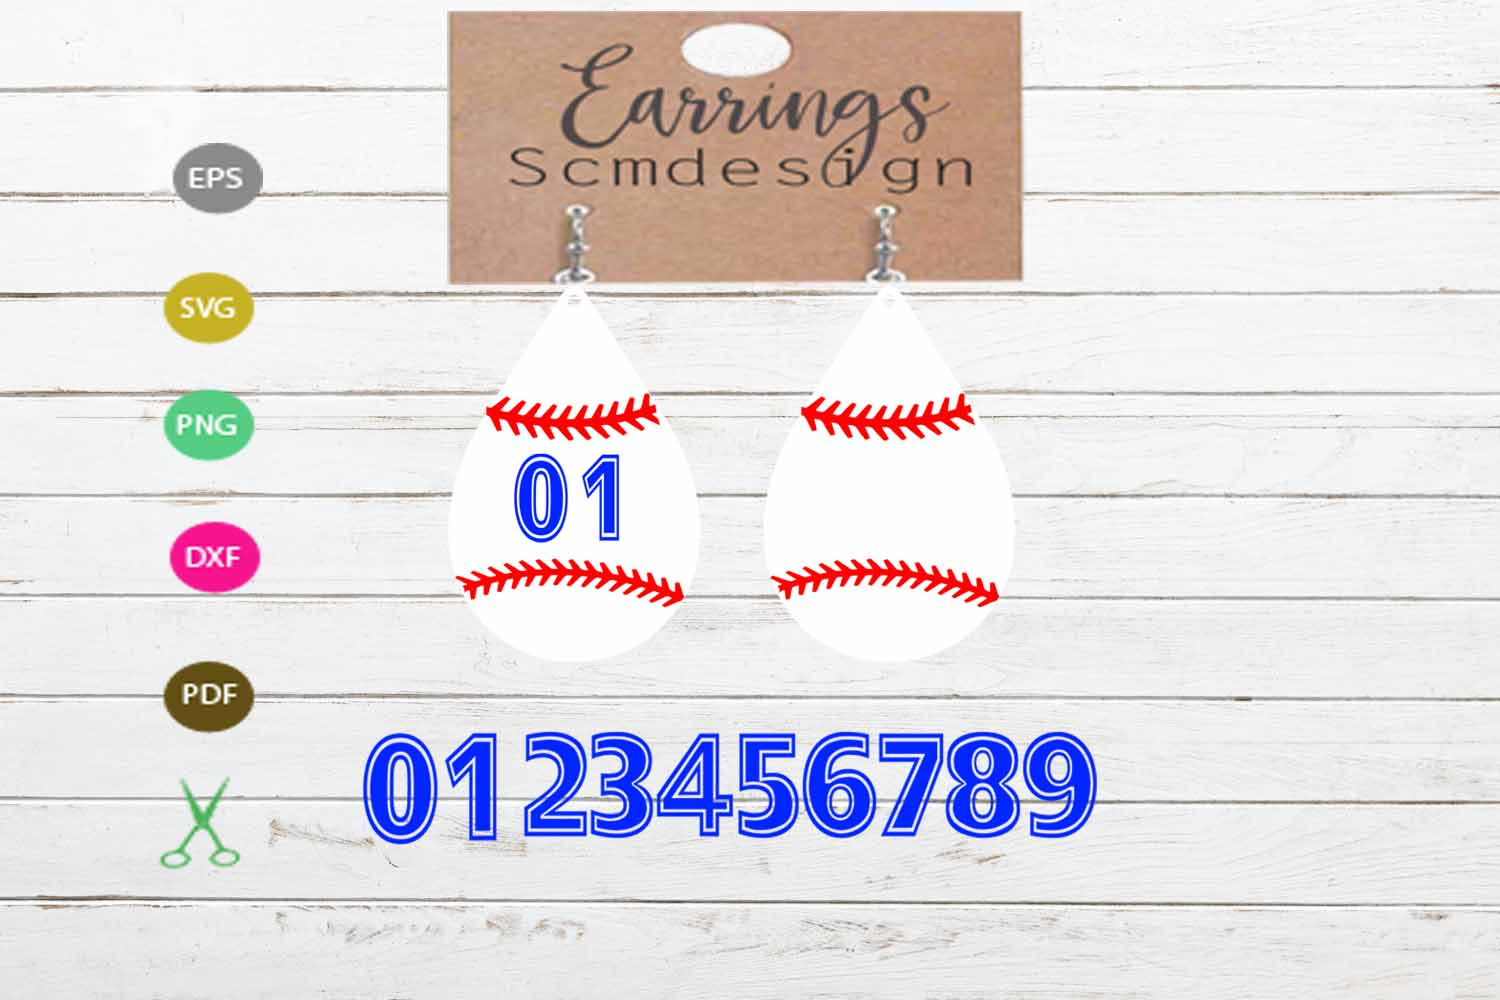 Download Free Earrings Svg Earrings Template Earrings Graphic By Scmdesign for Cricut Explore, Silhouette and other cutting machines.